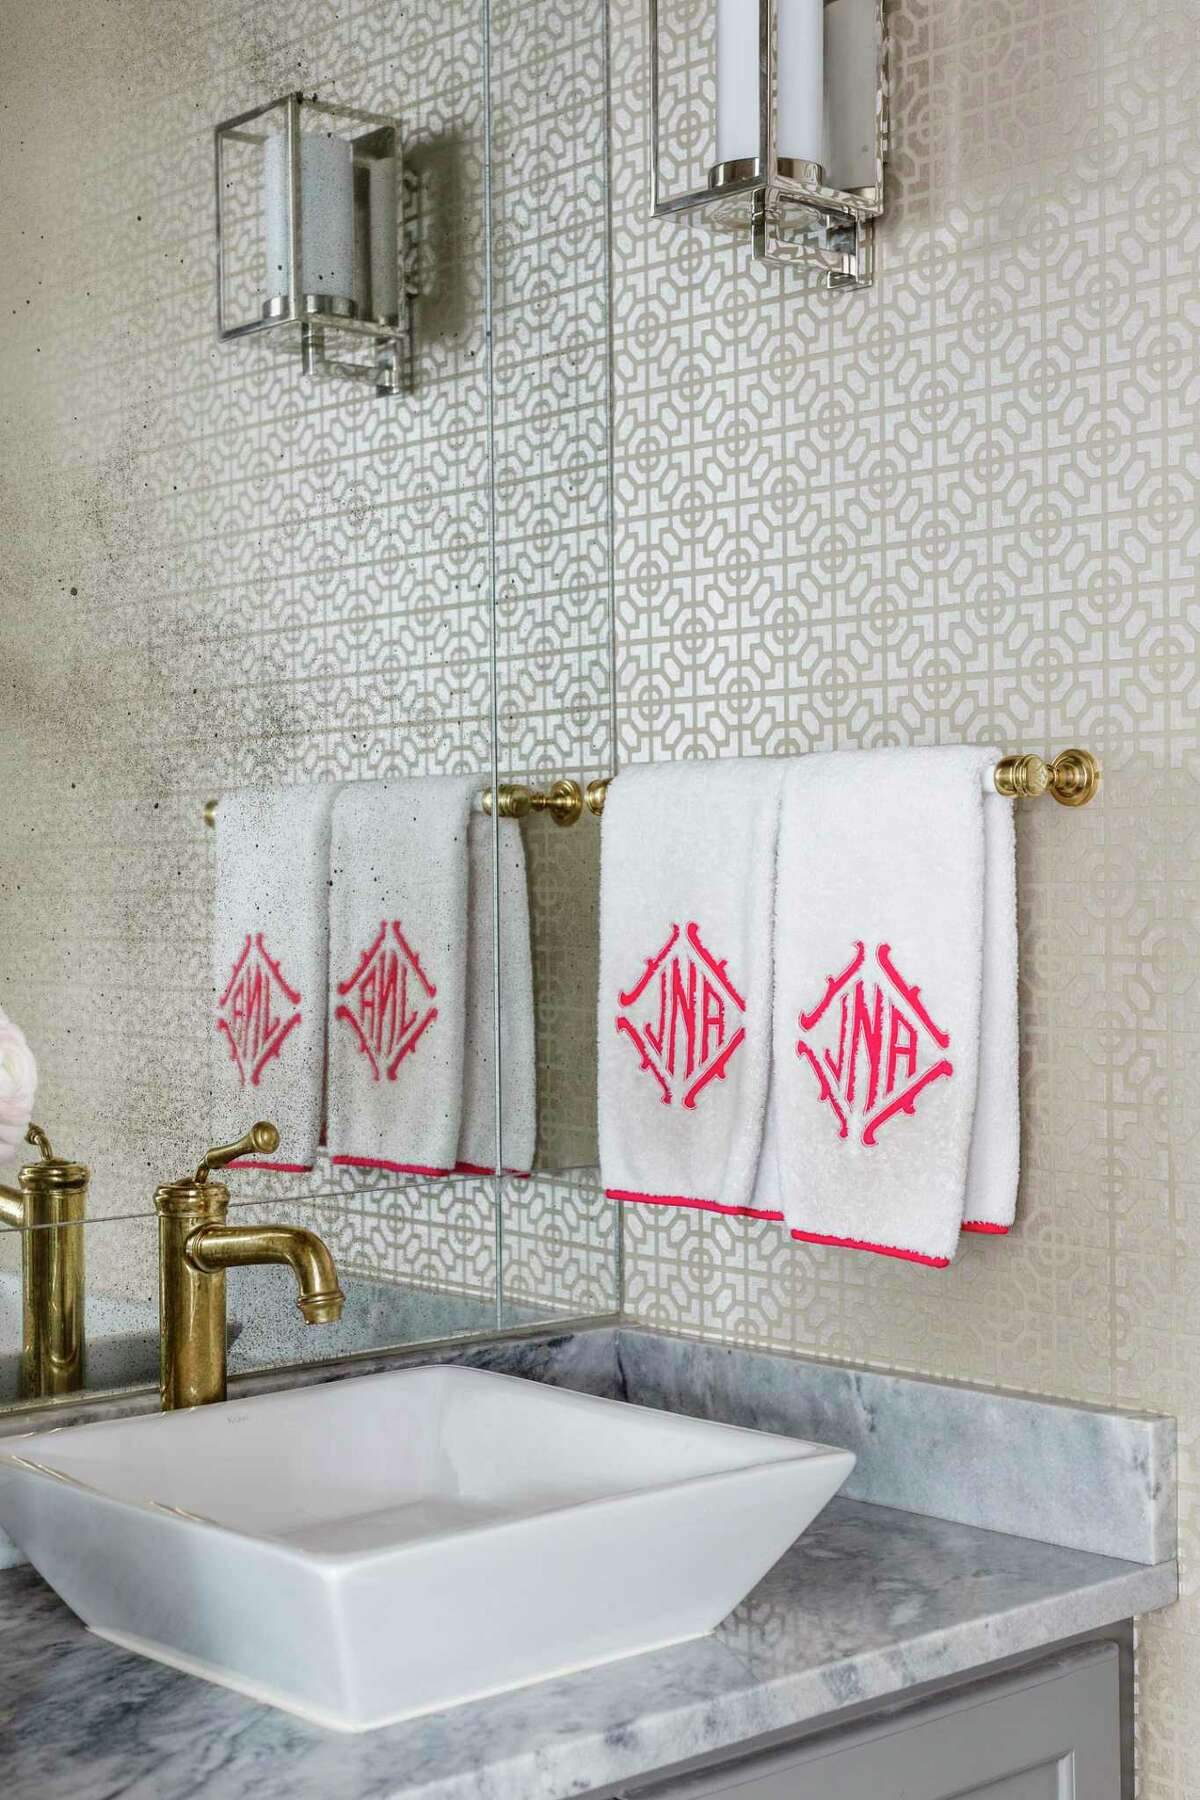 Wallpaper can have a dramatic impact in a bathroom, such as in the Houston home of Julia and Andrew Novarini.